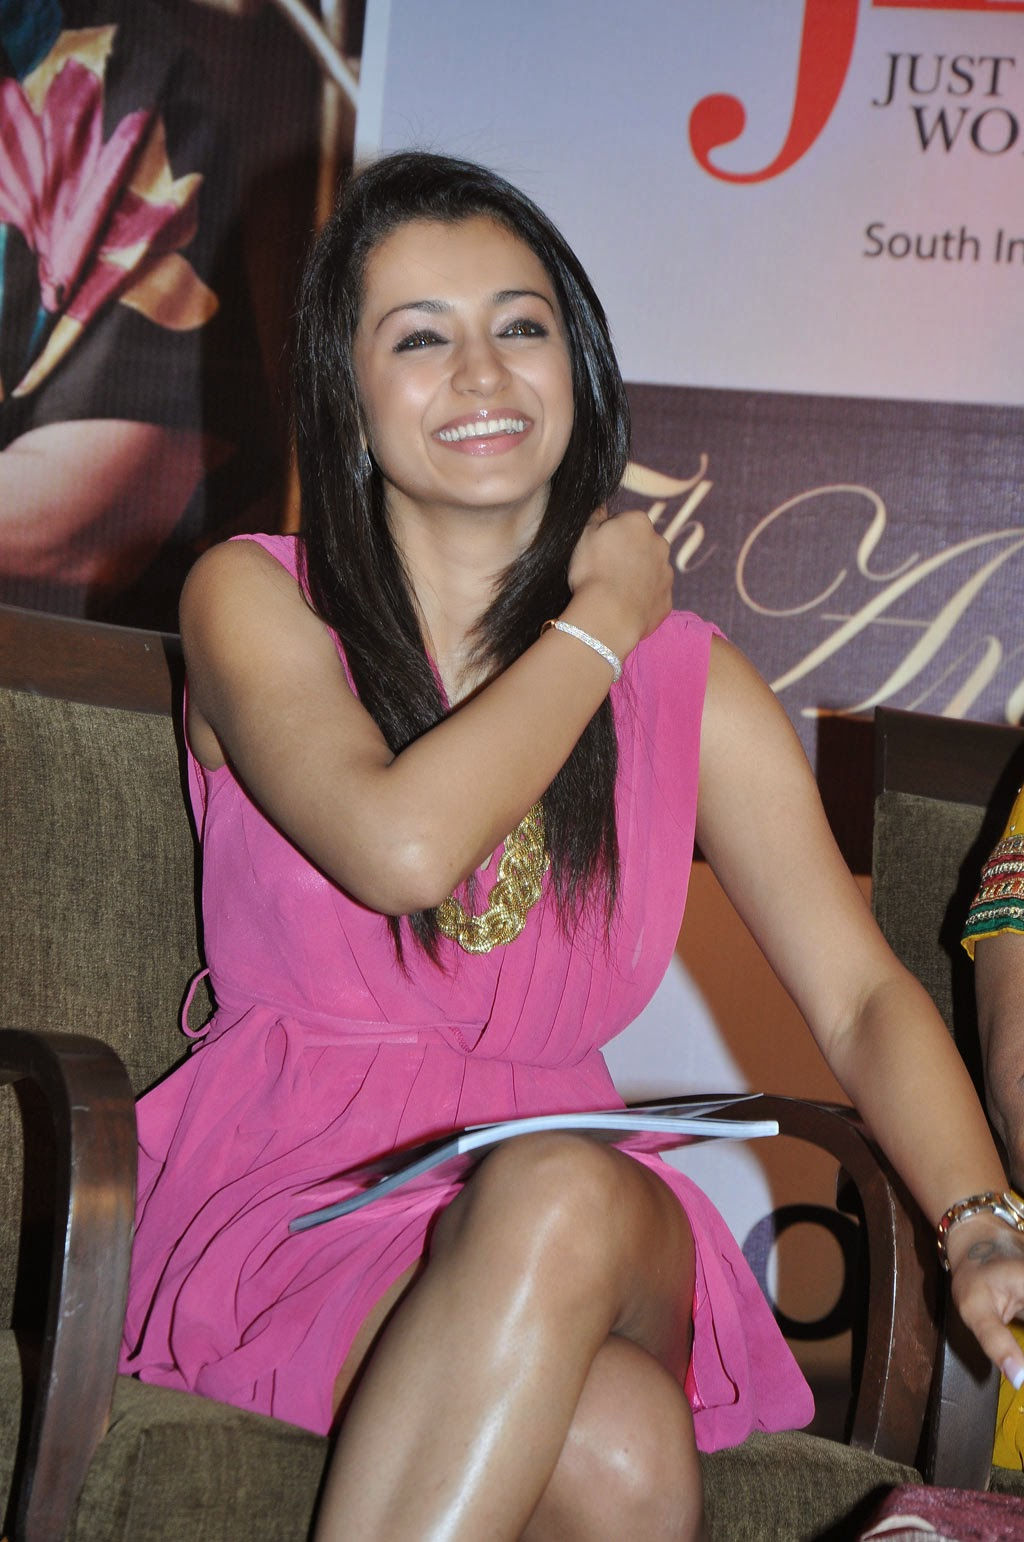 trisha hot thigh picture